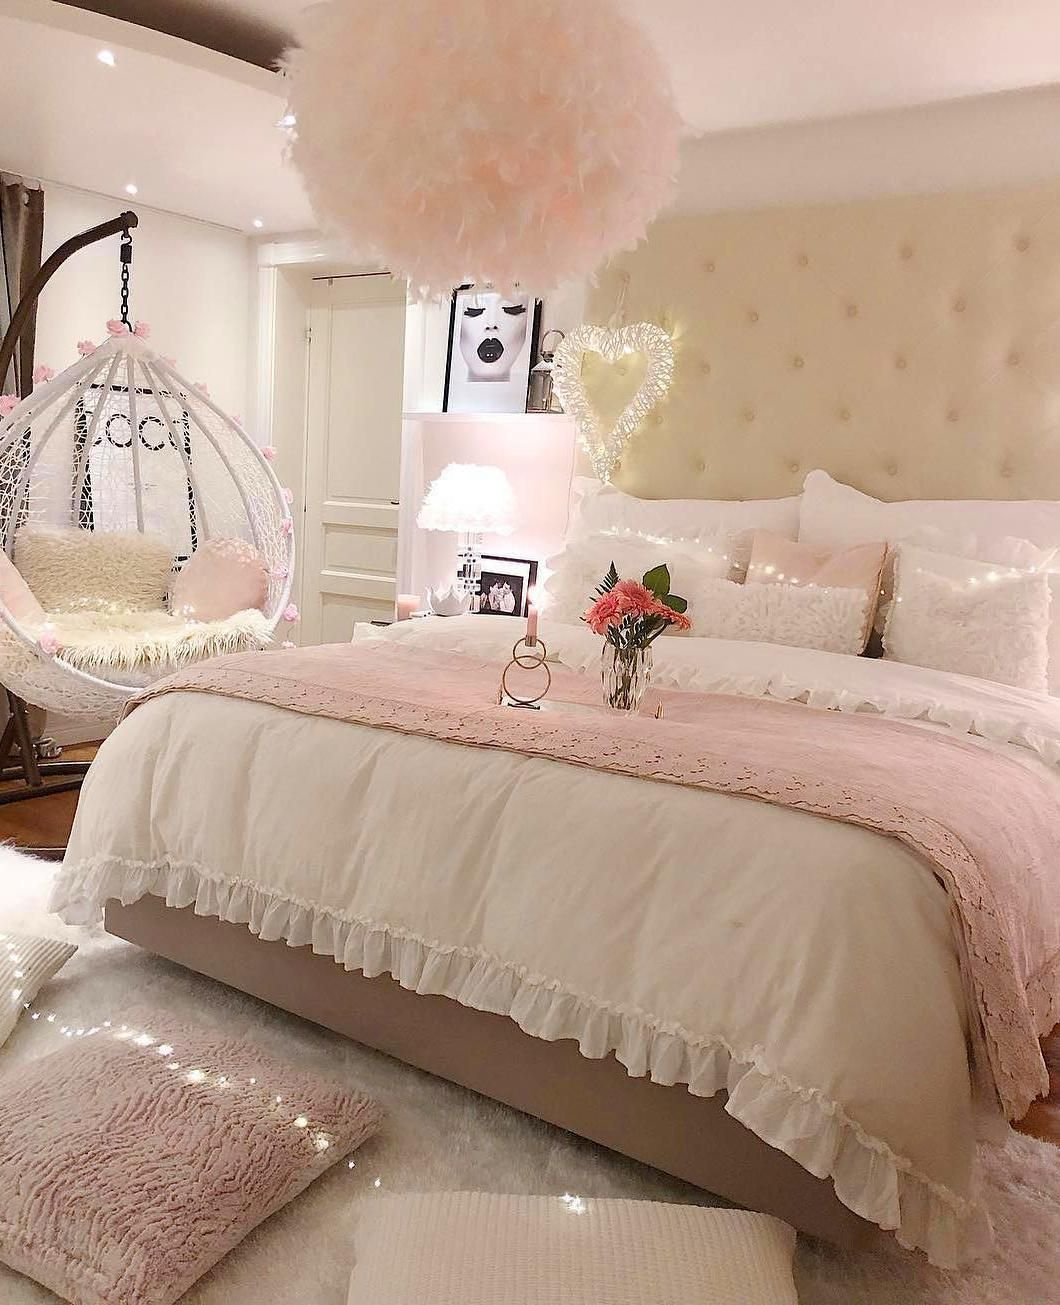 50 Best Master Bedroom Decor Ideas For You Luxurious Bedrooms Luxury Bedroom Sets Woman Bedroom Girls luxury room pictures